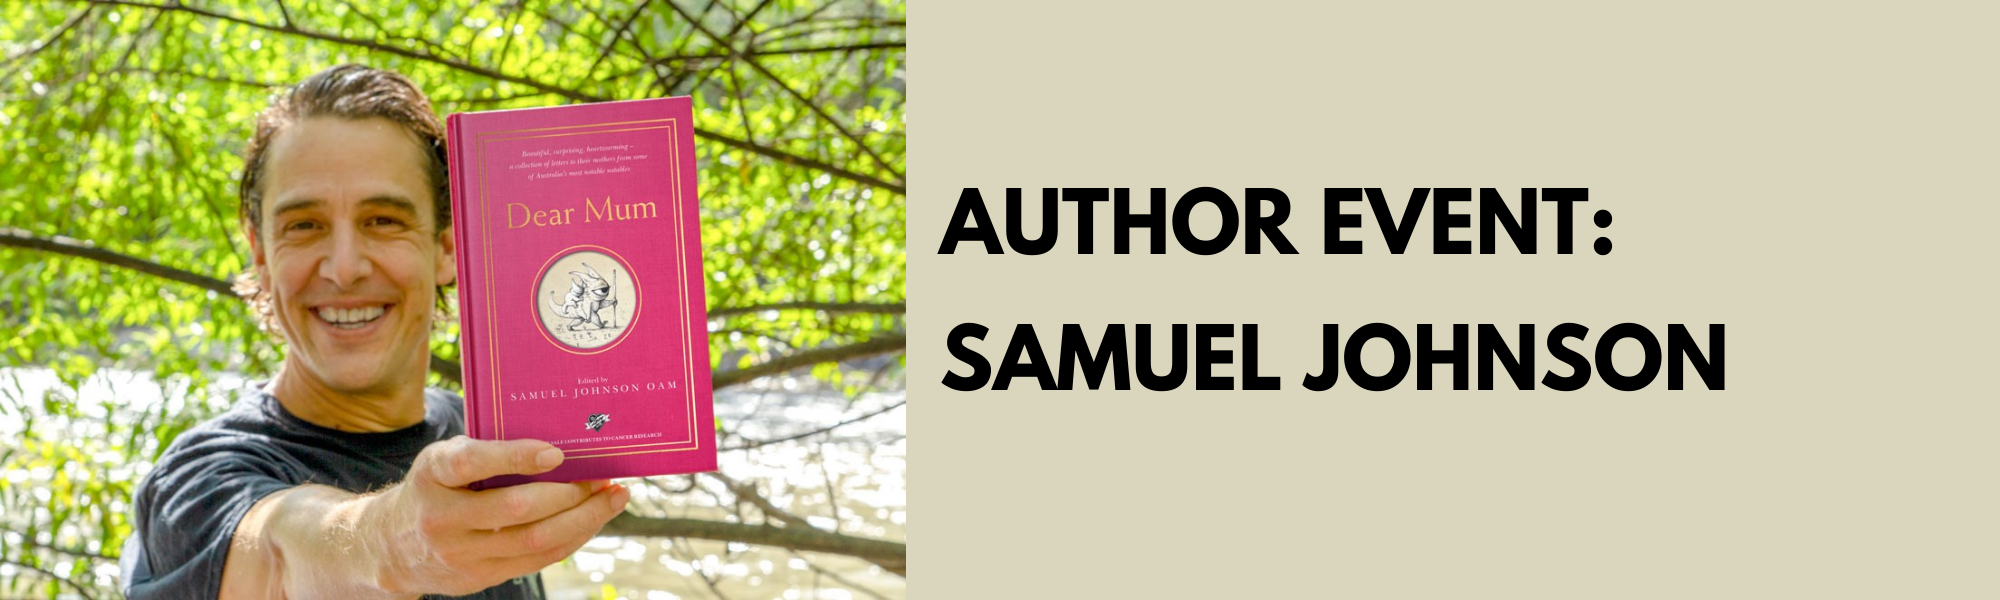 Author-event-Samuel-Johnson.png